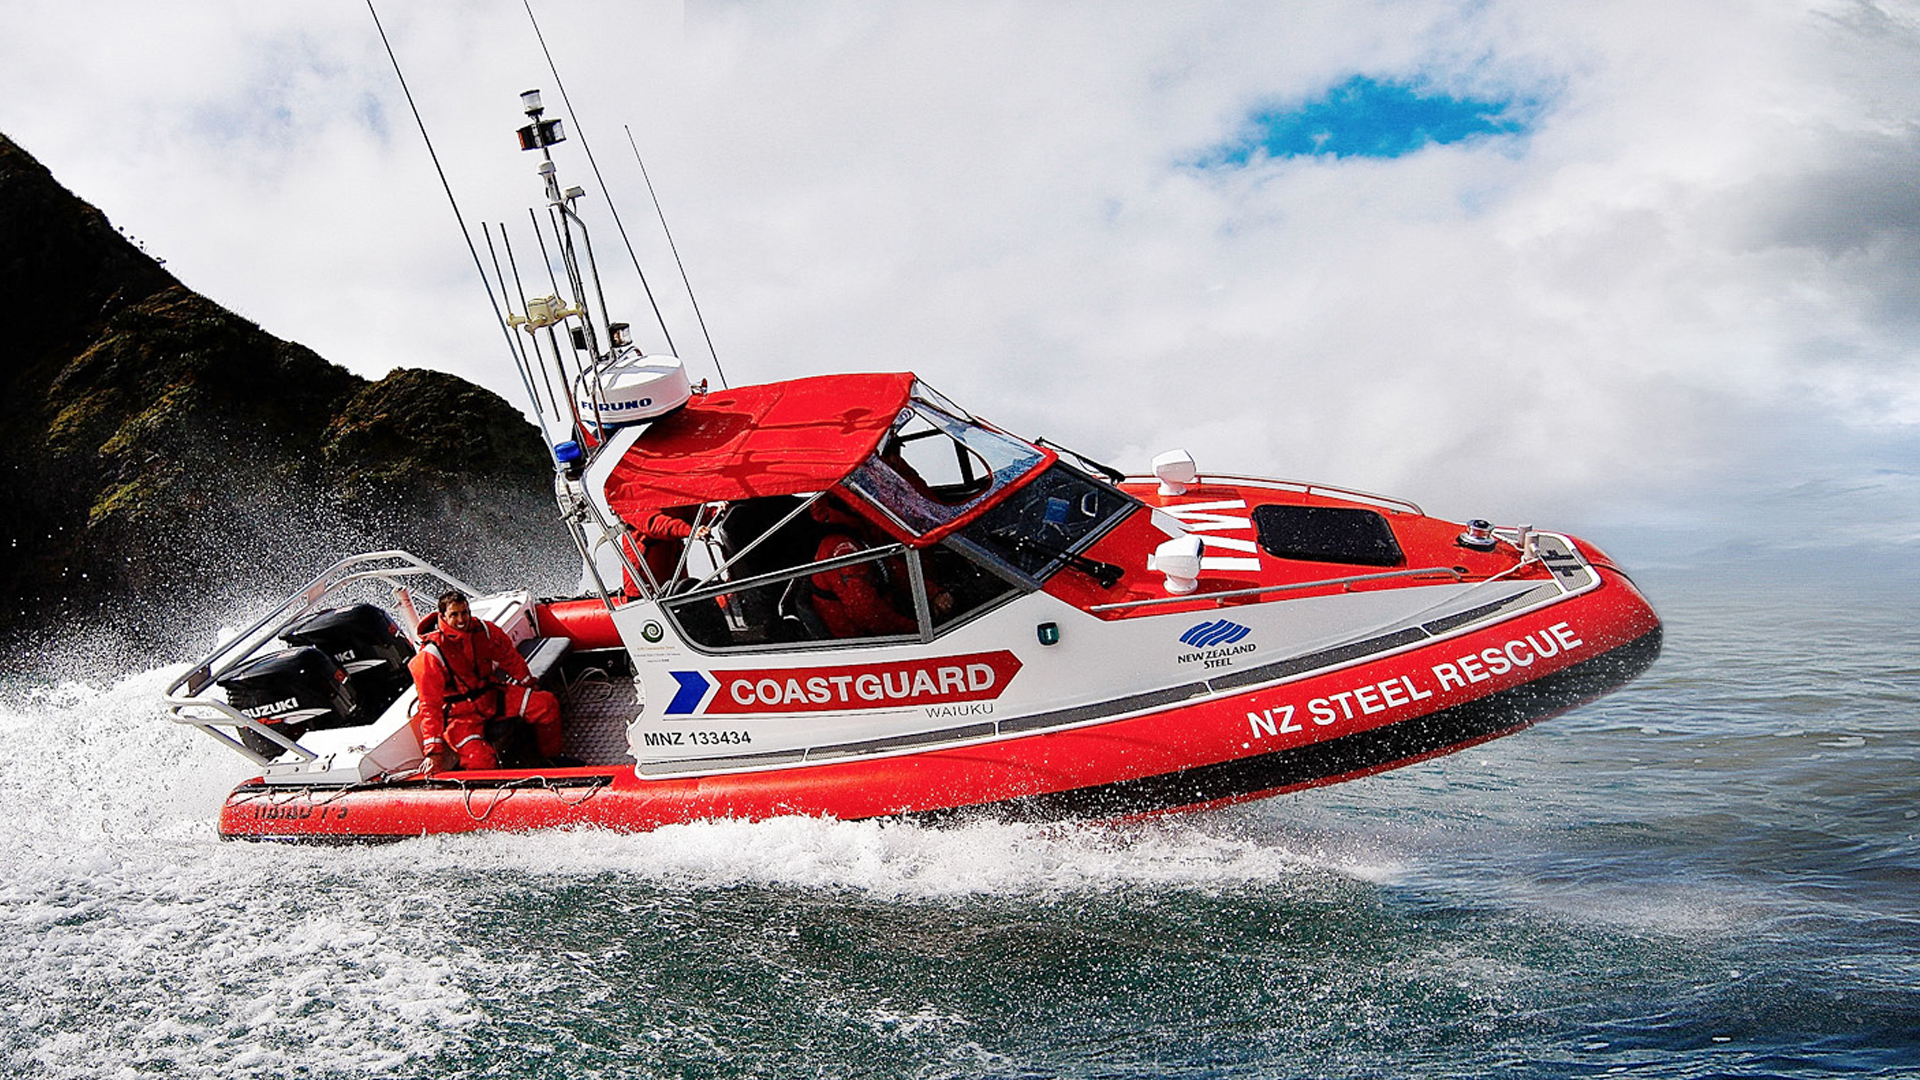 coastguard nz banner